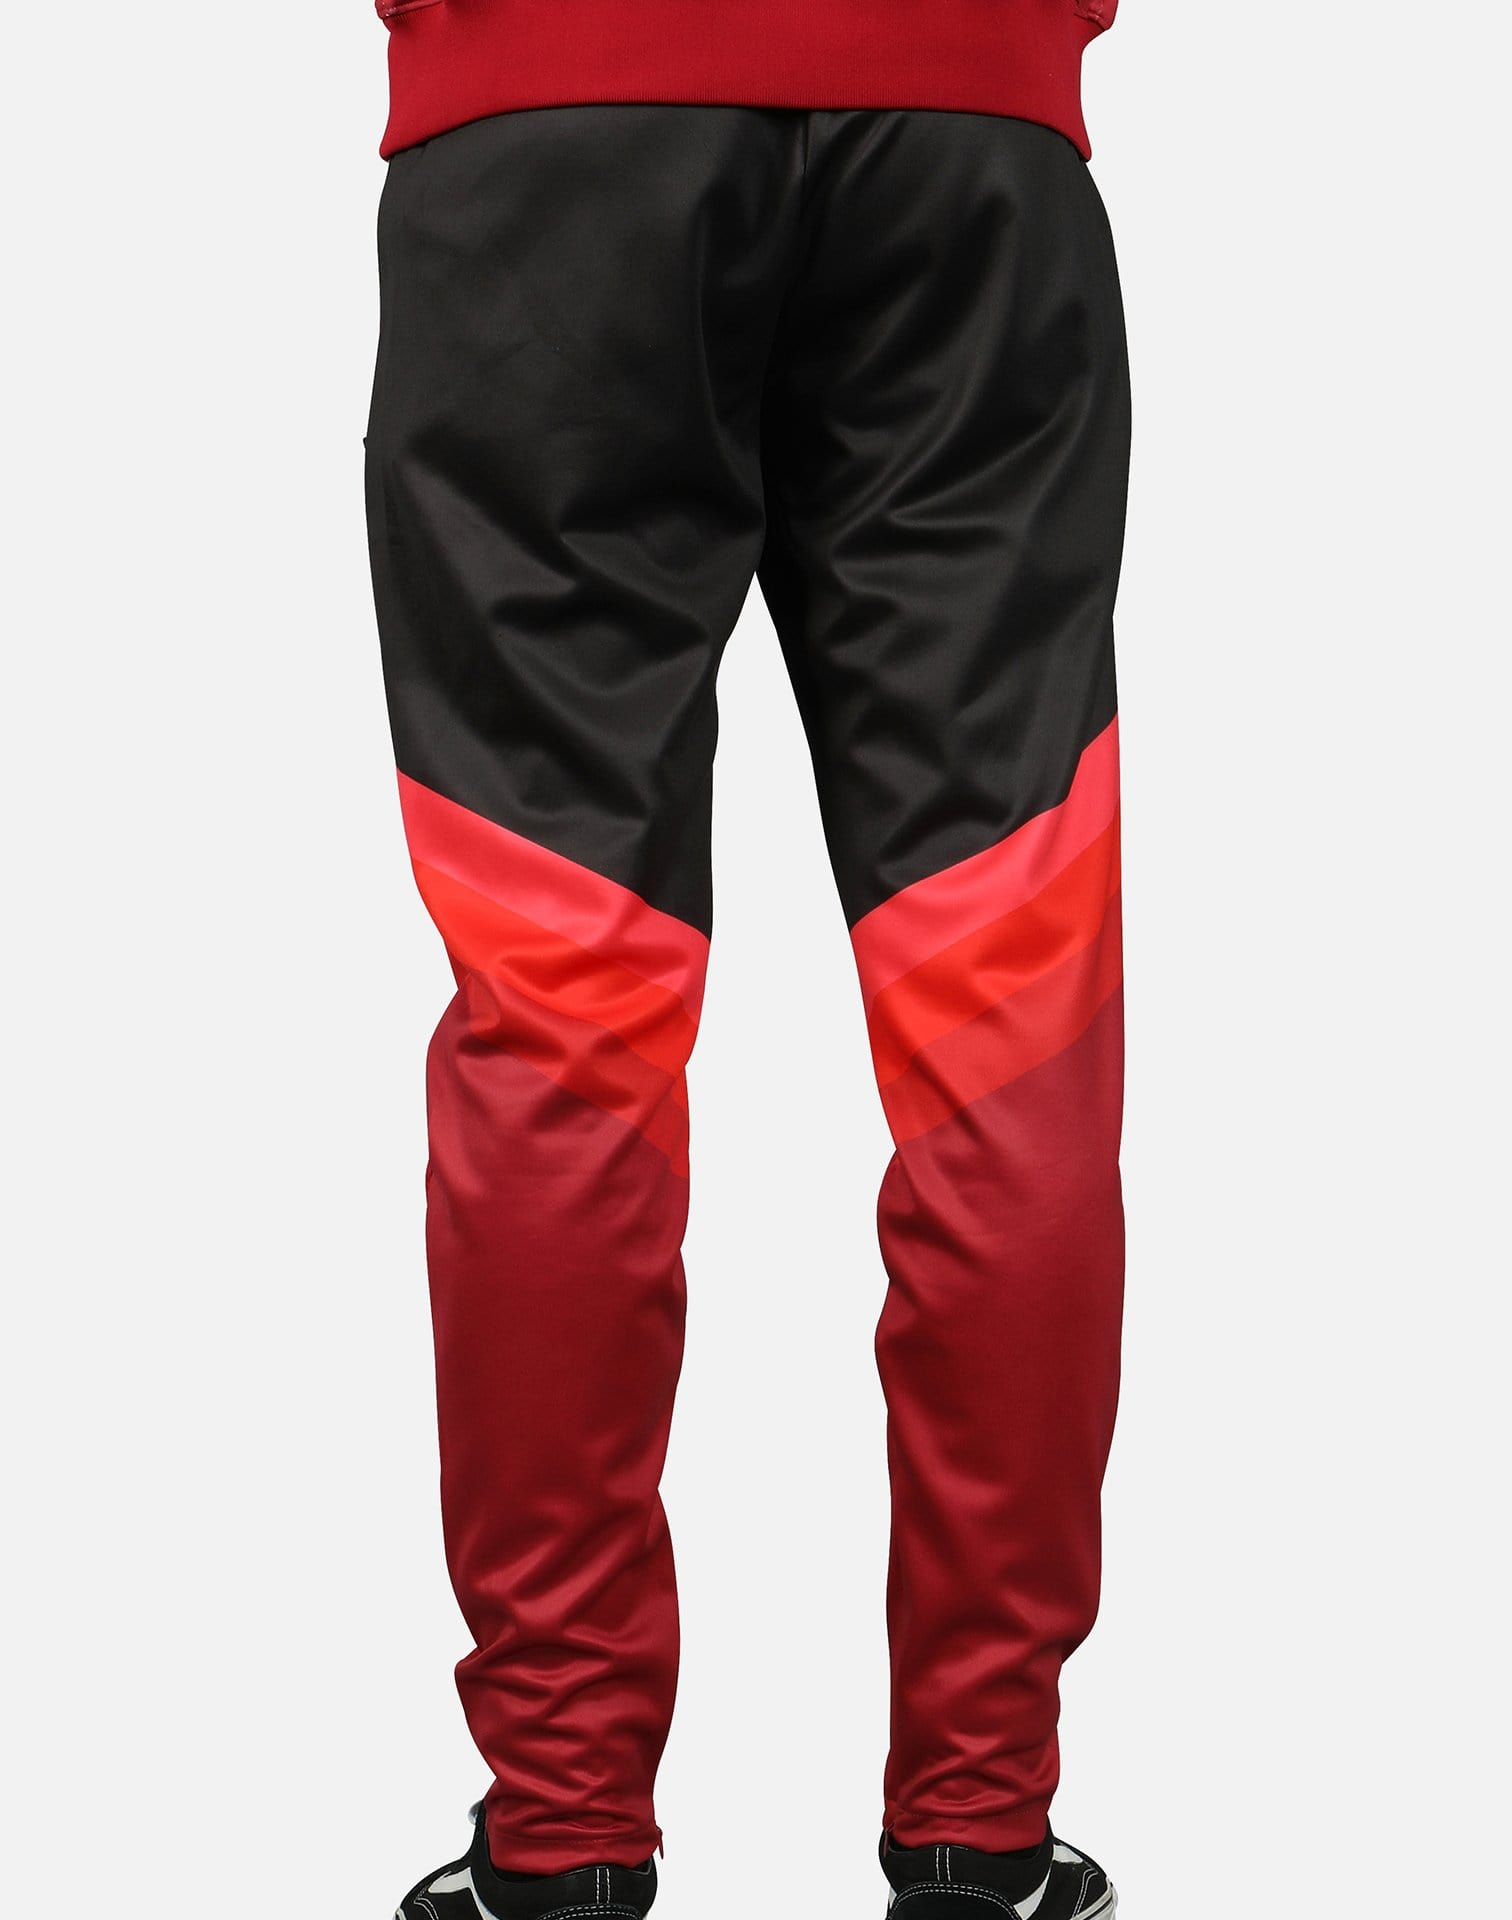 Black Pyramid Men's Gradient Stipe Jogger Pants